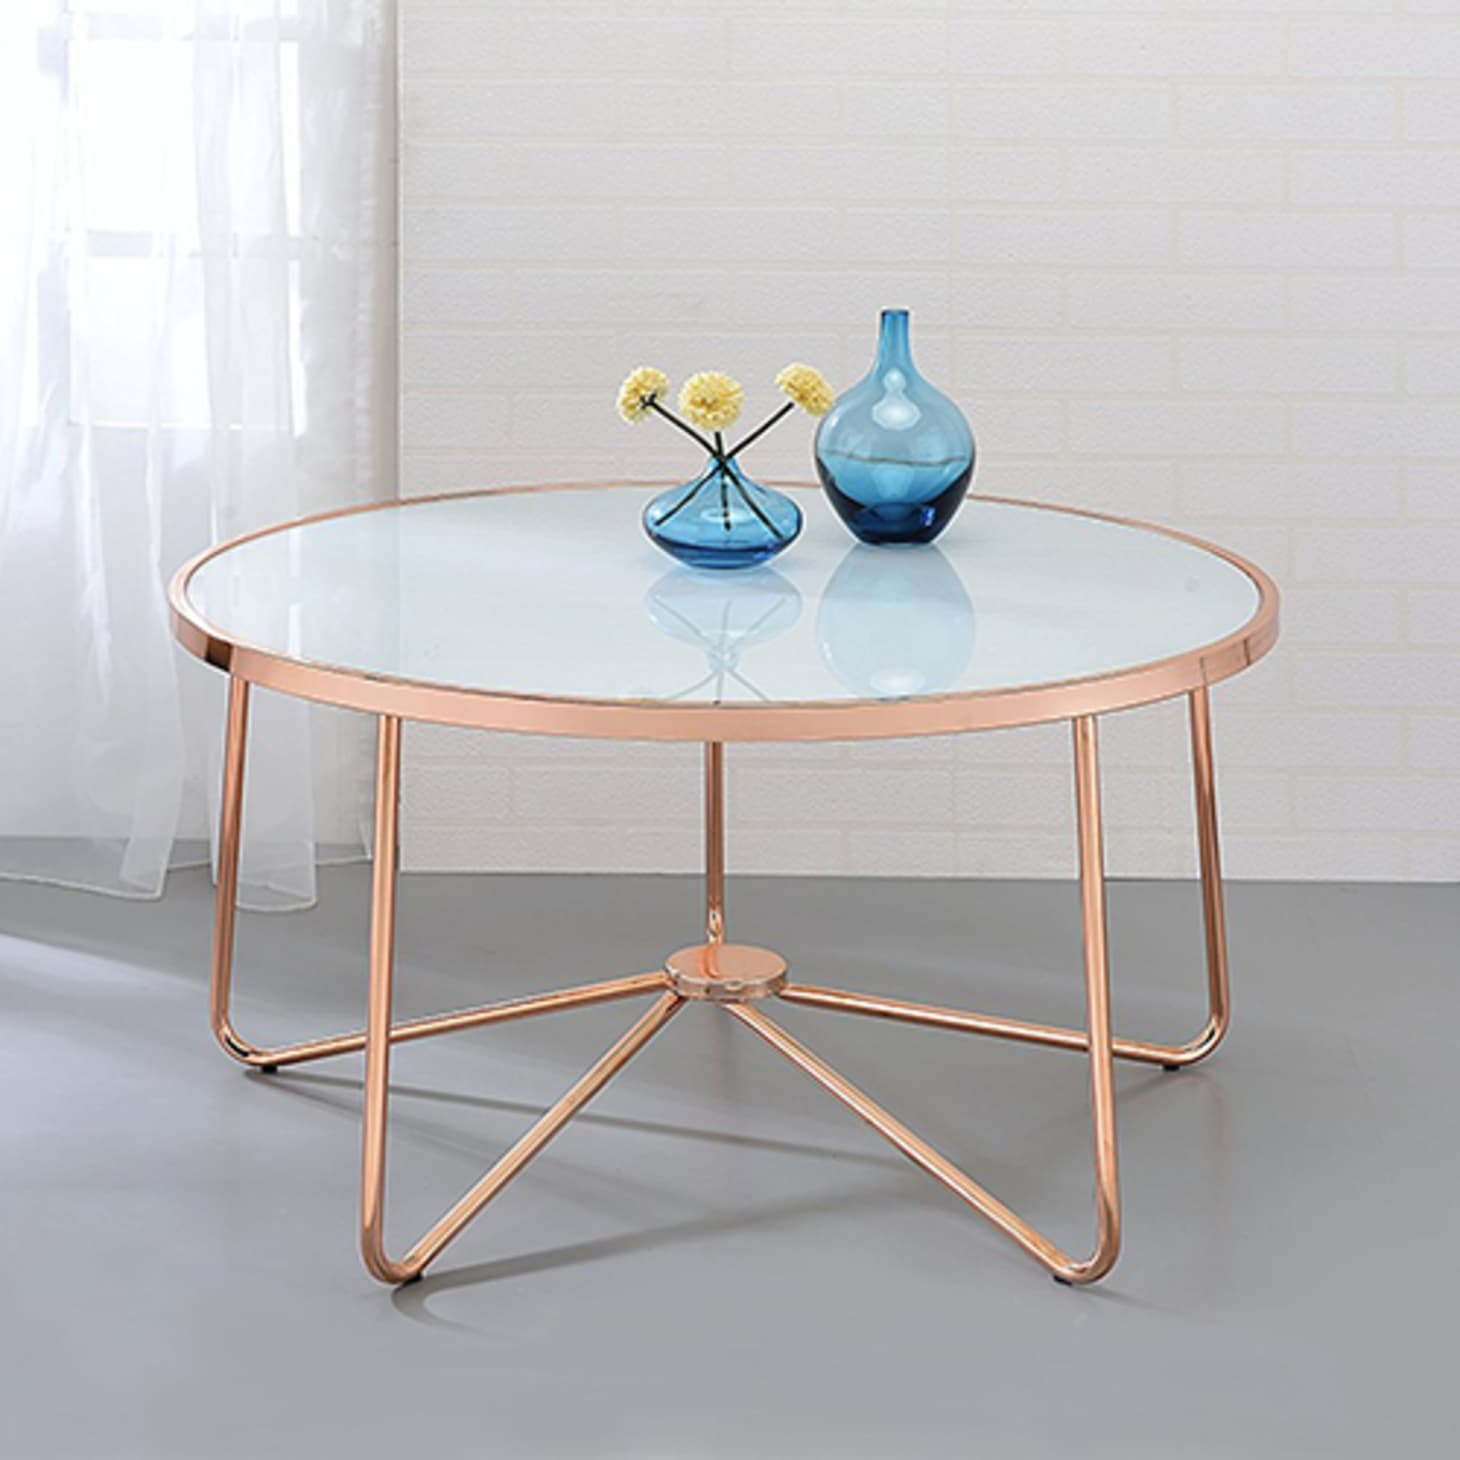 15 Stylish Modern Round Coffee Tables For Every Budget Apartment